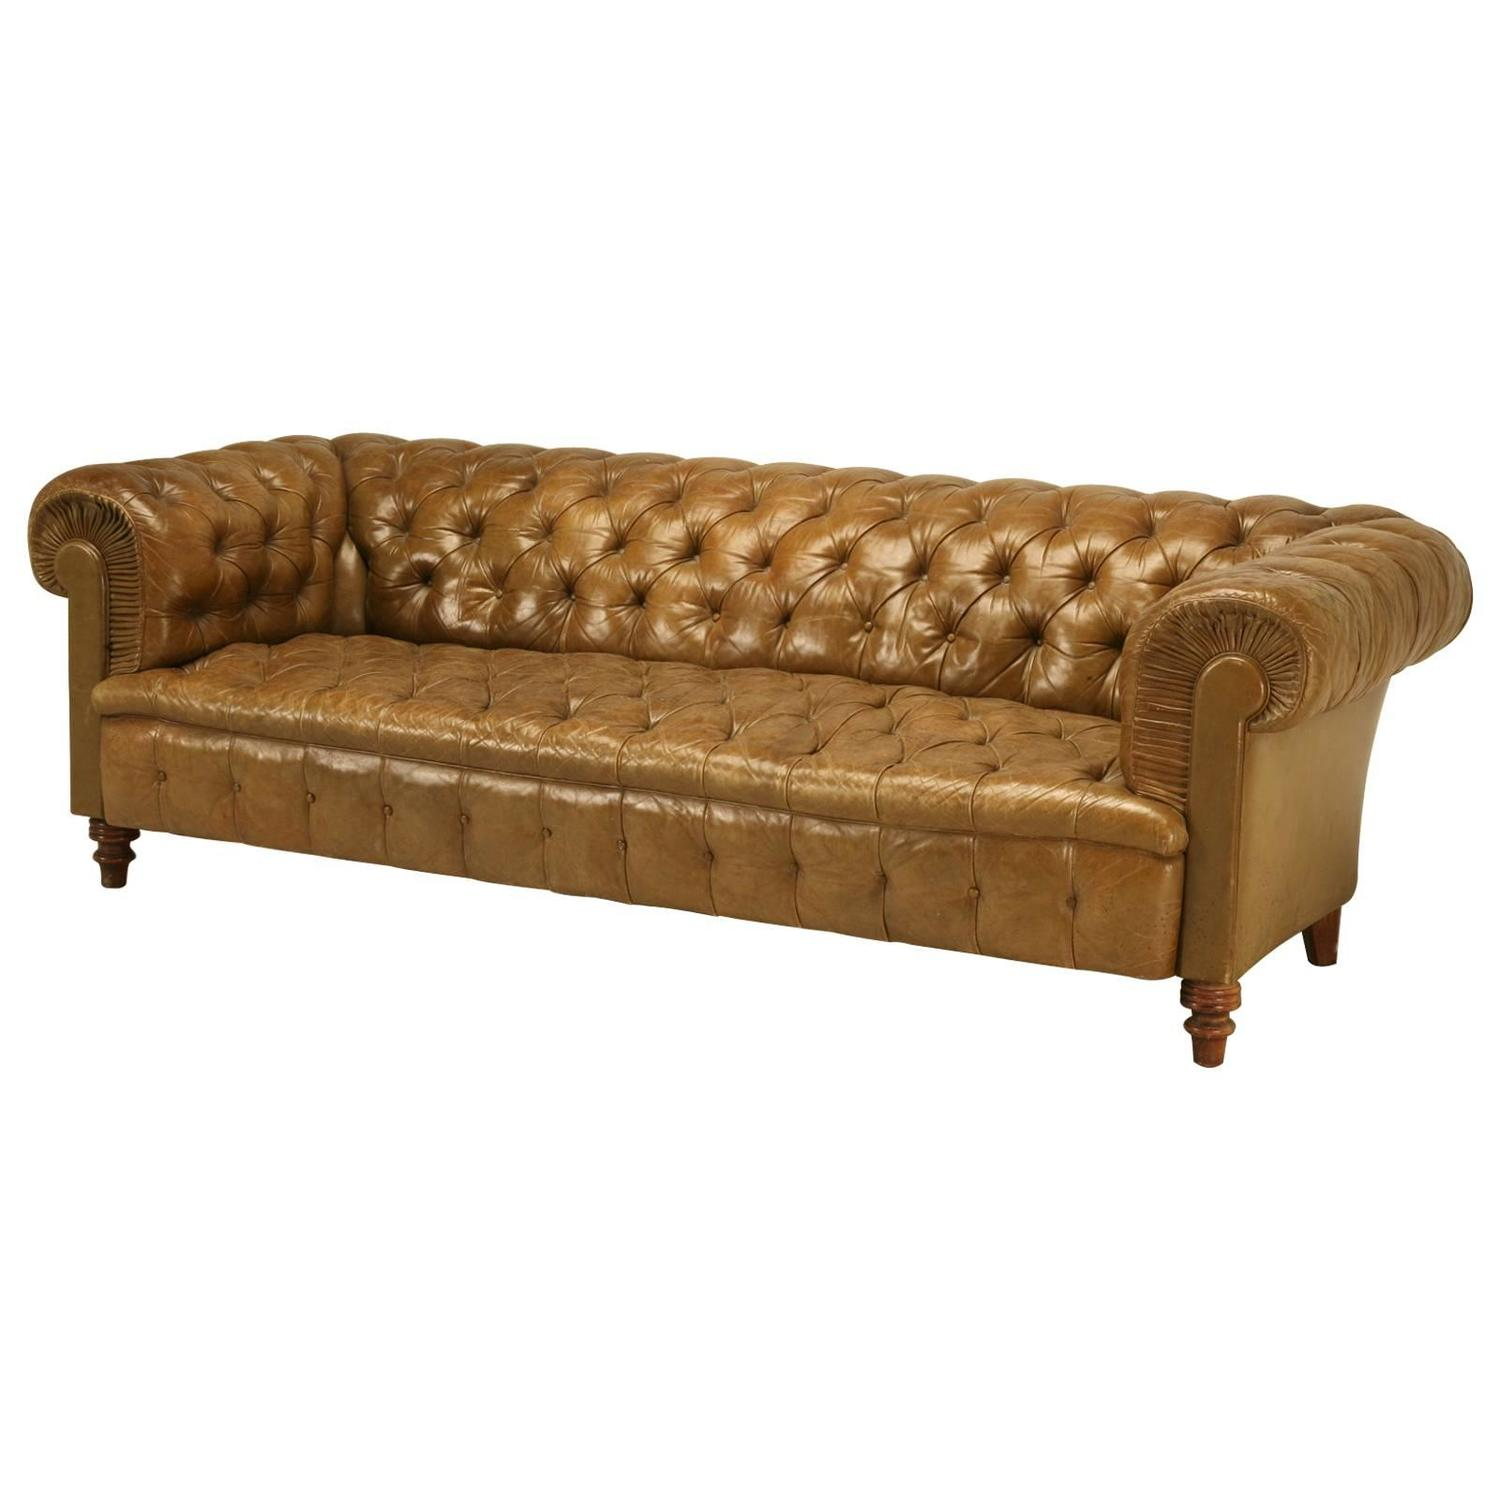 original unrestored chesterfield tufted leather sofa at 1stdibs. Black Bedroom Furniture Sets. Home Design Ideas